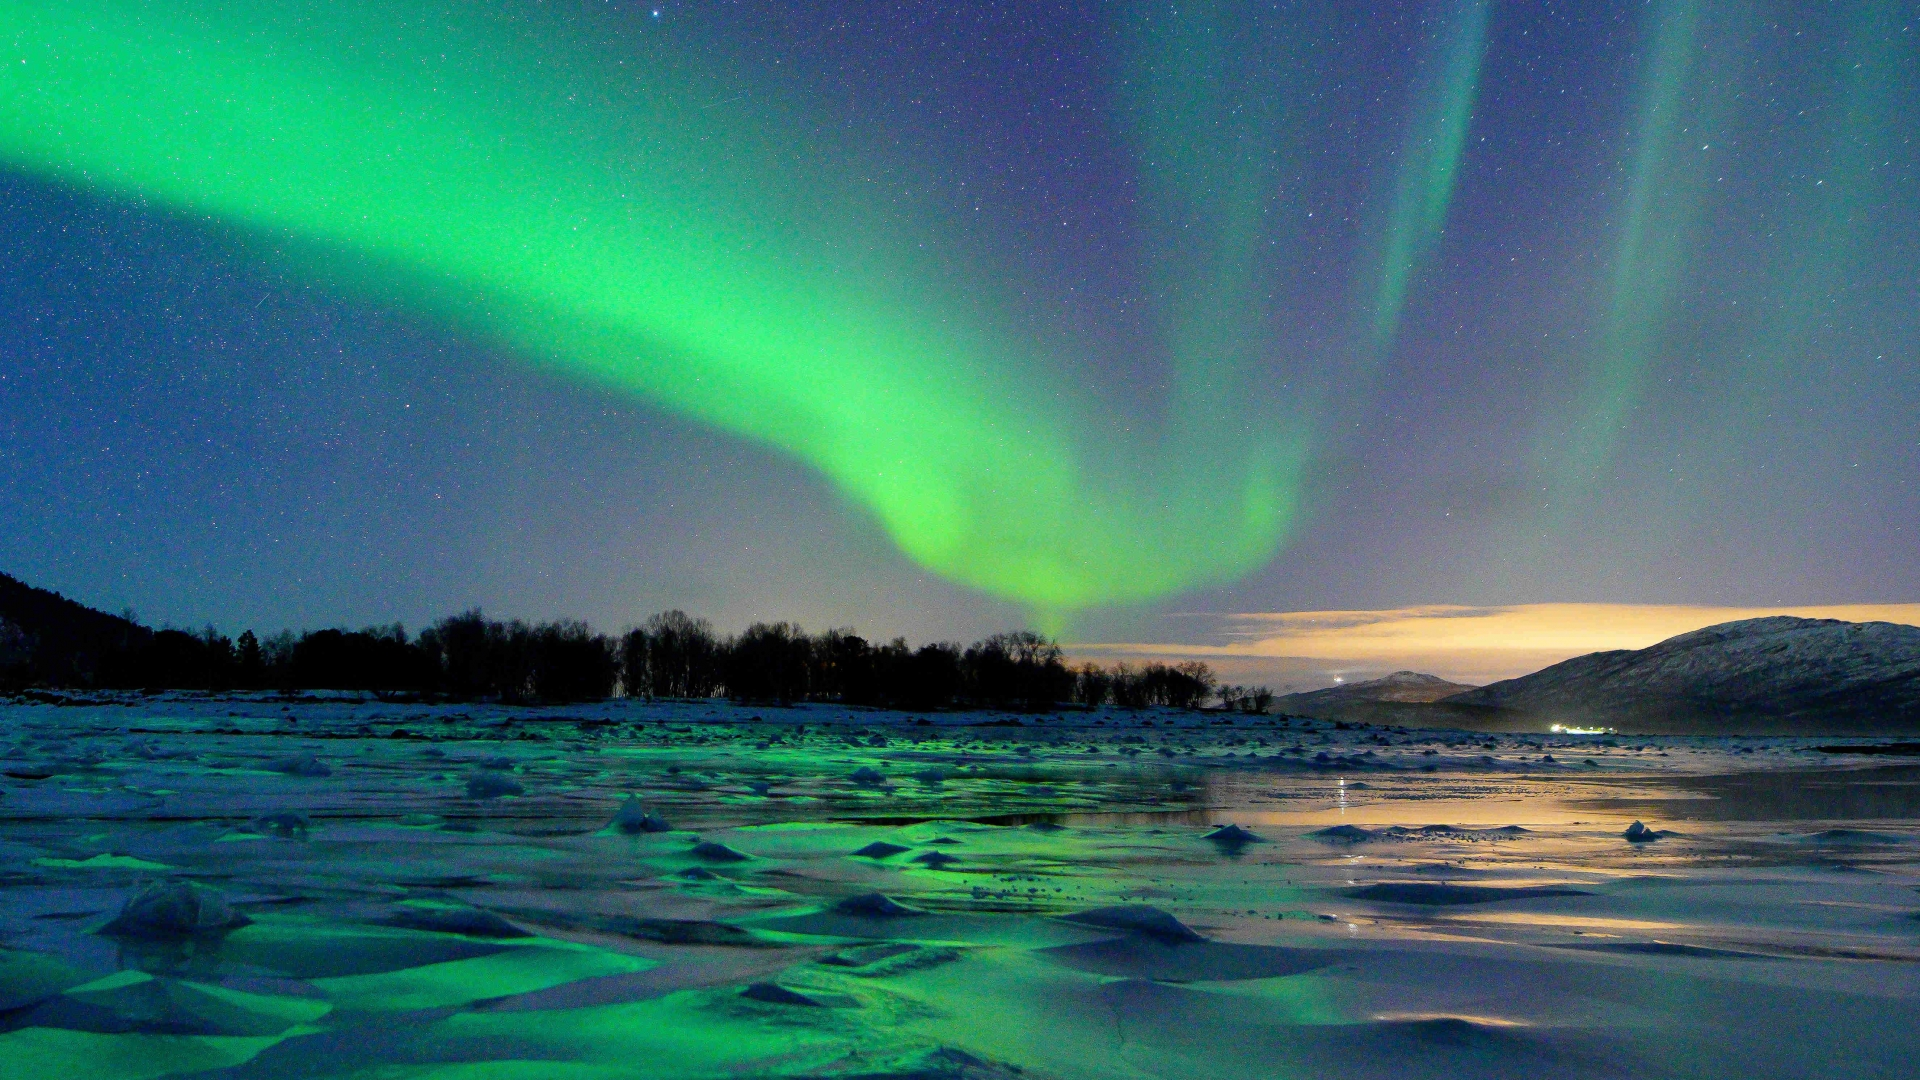 Northern Lights over icy water